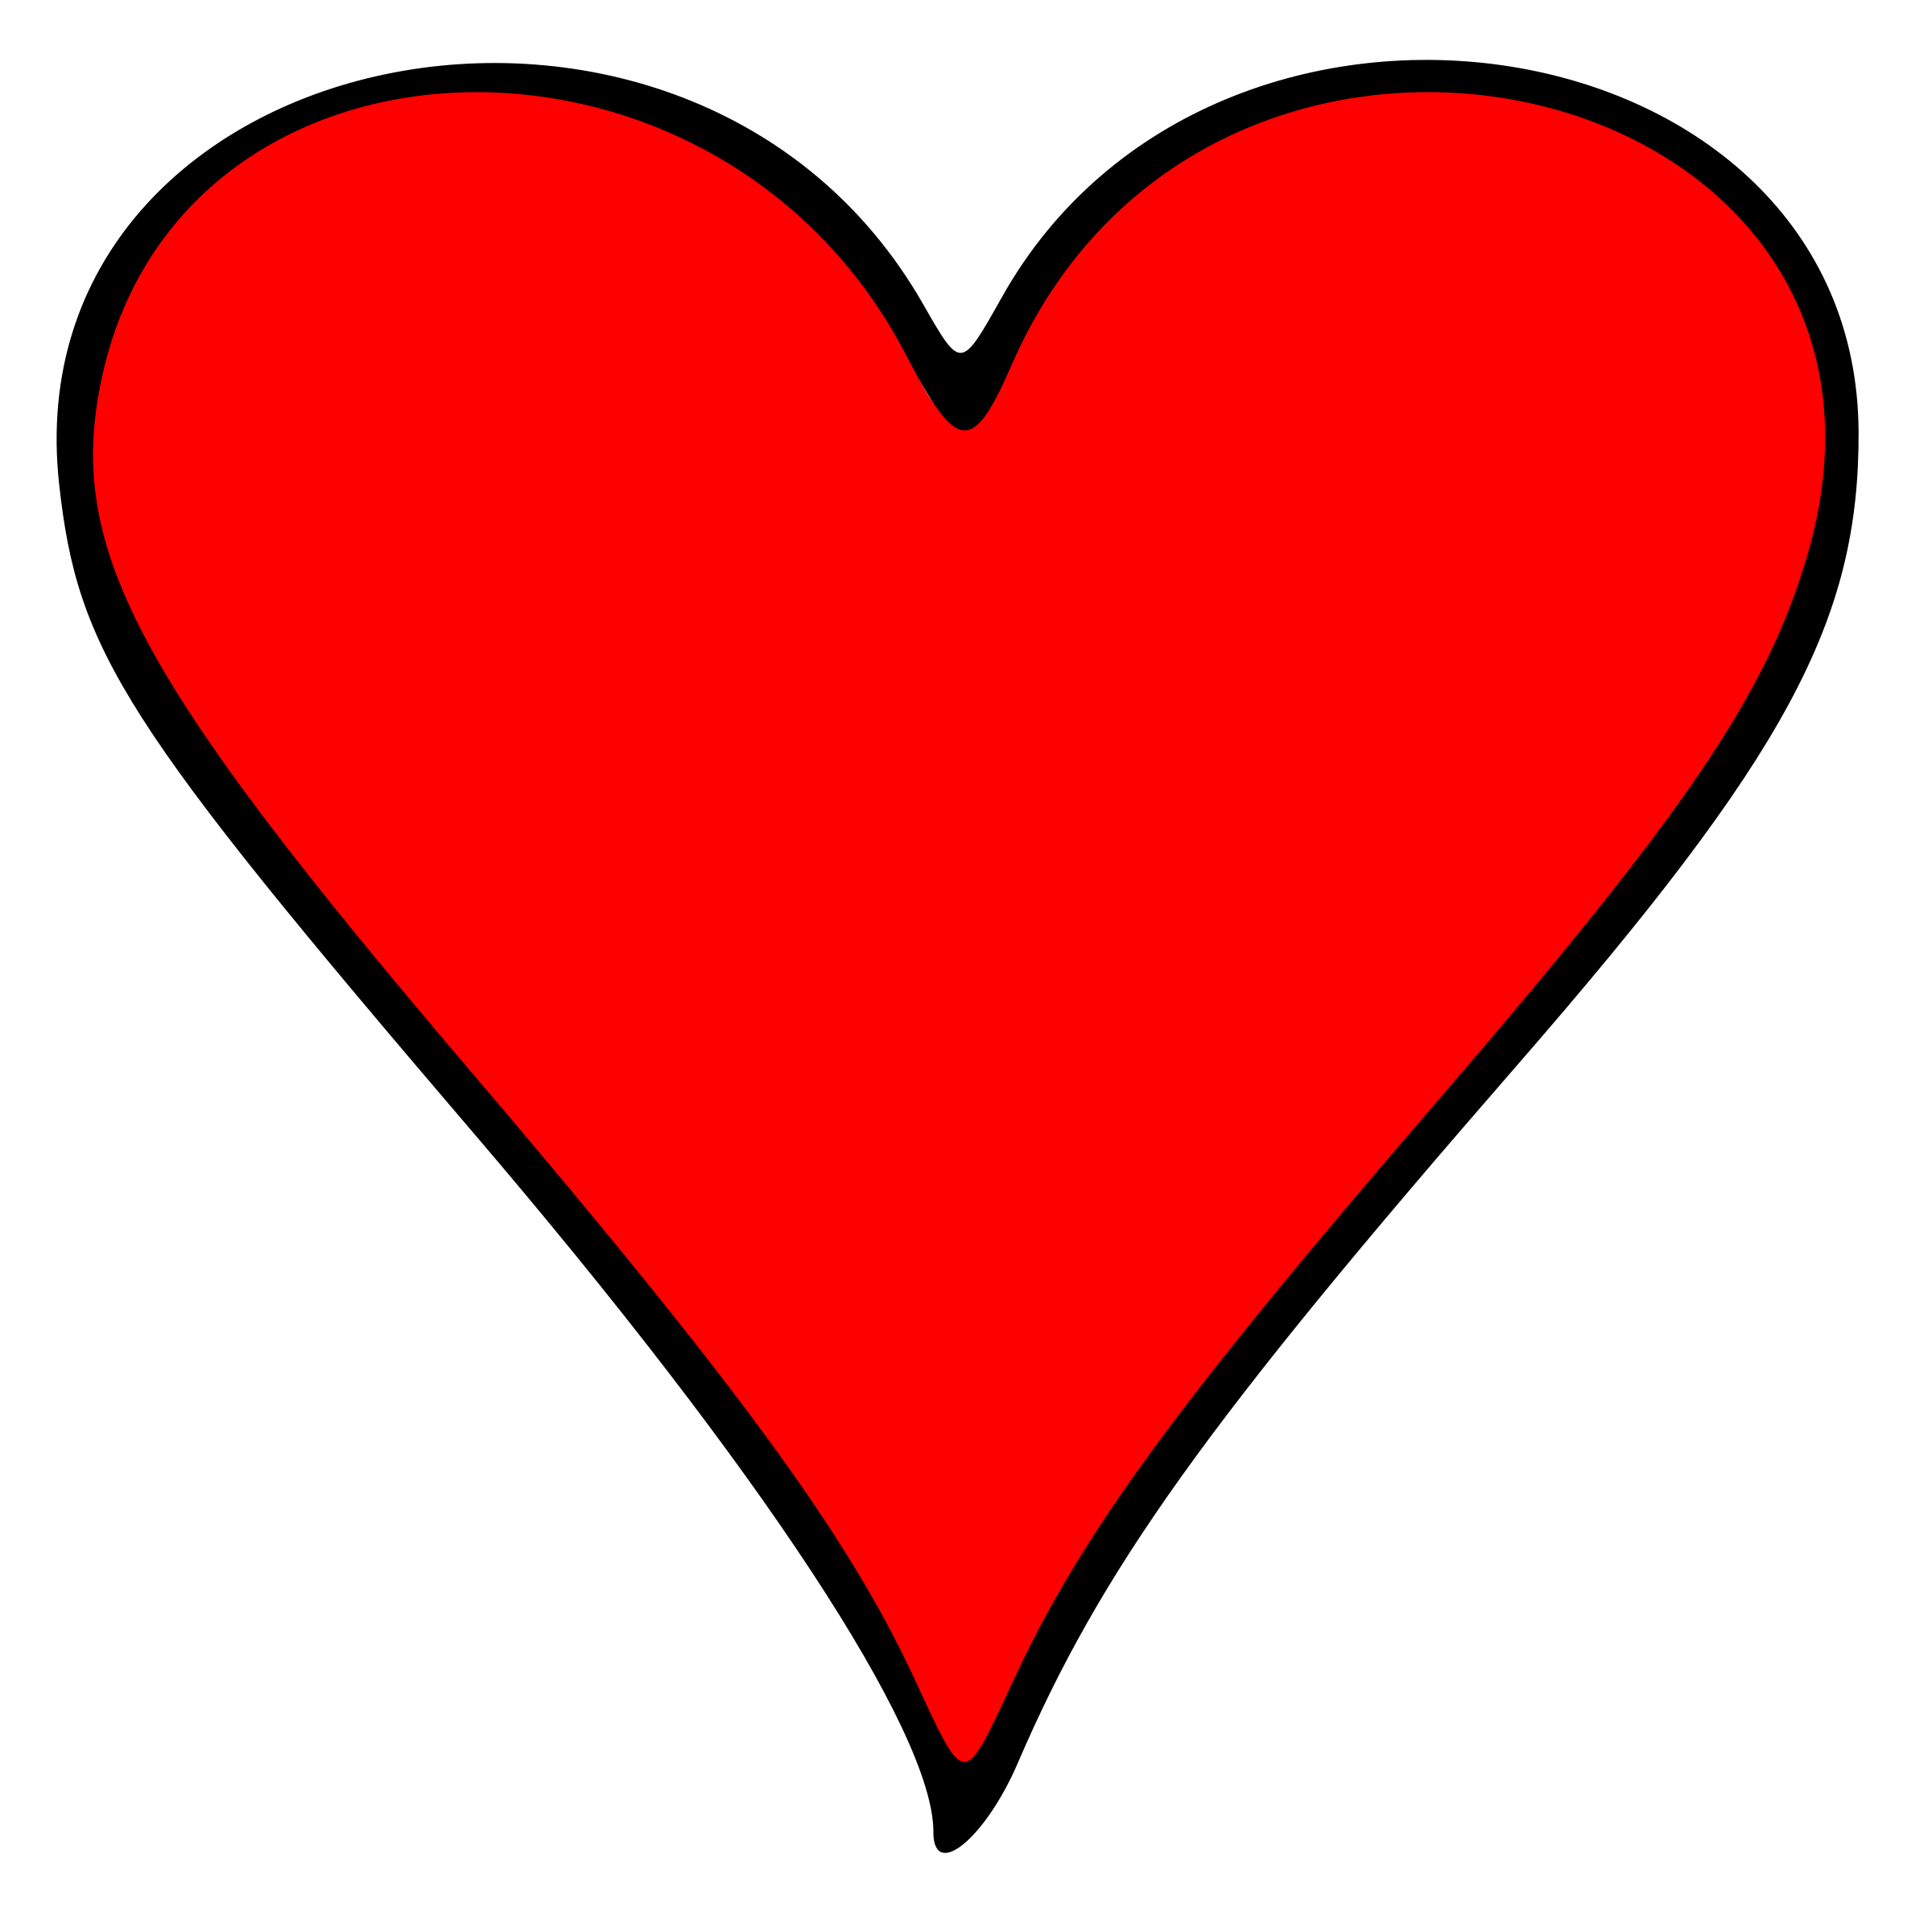 Symbol For Heart - ClipArt Best